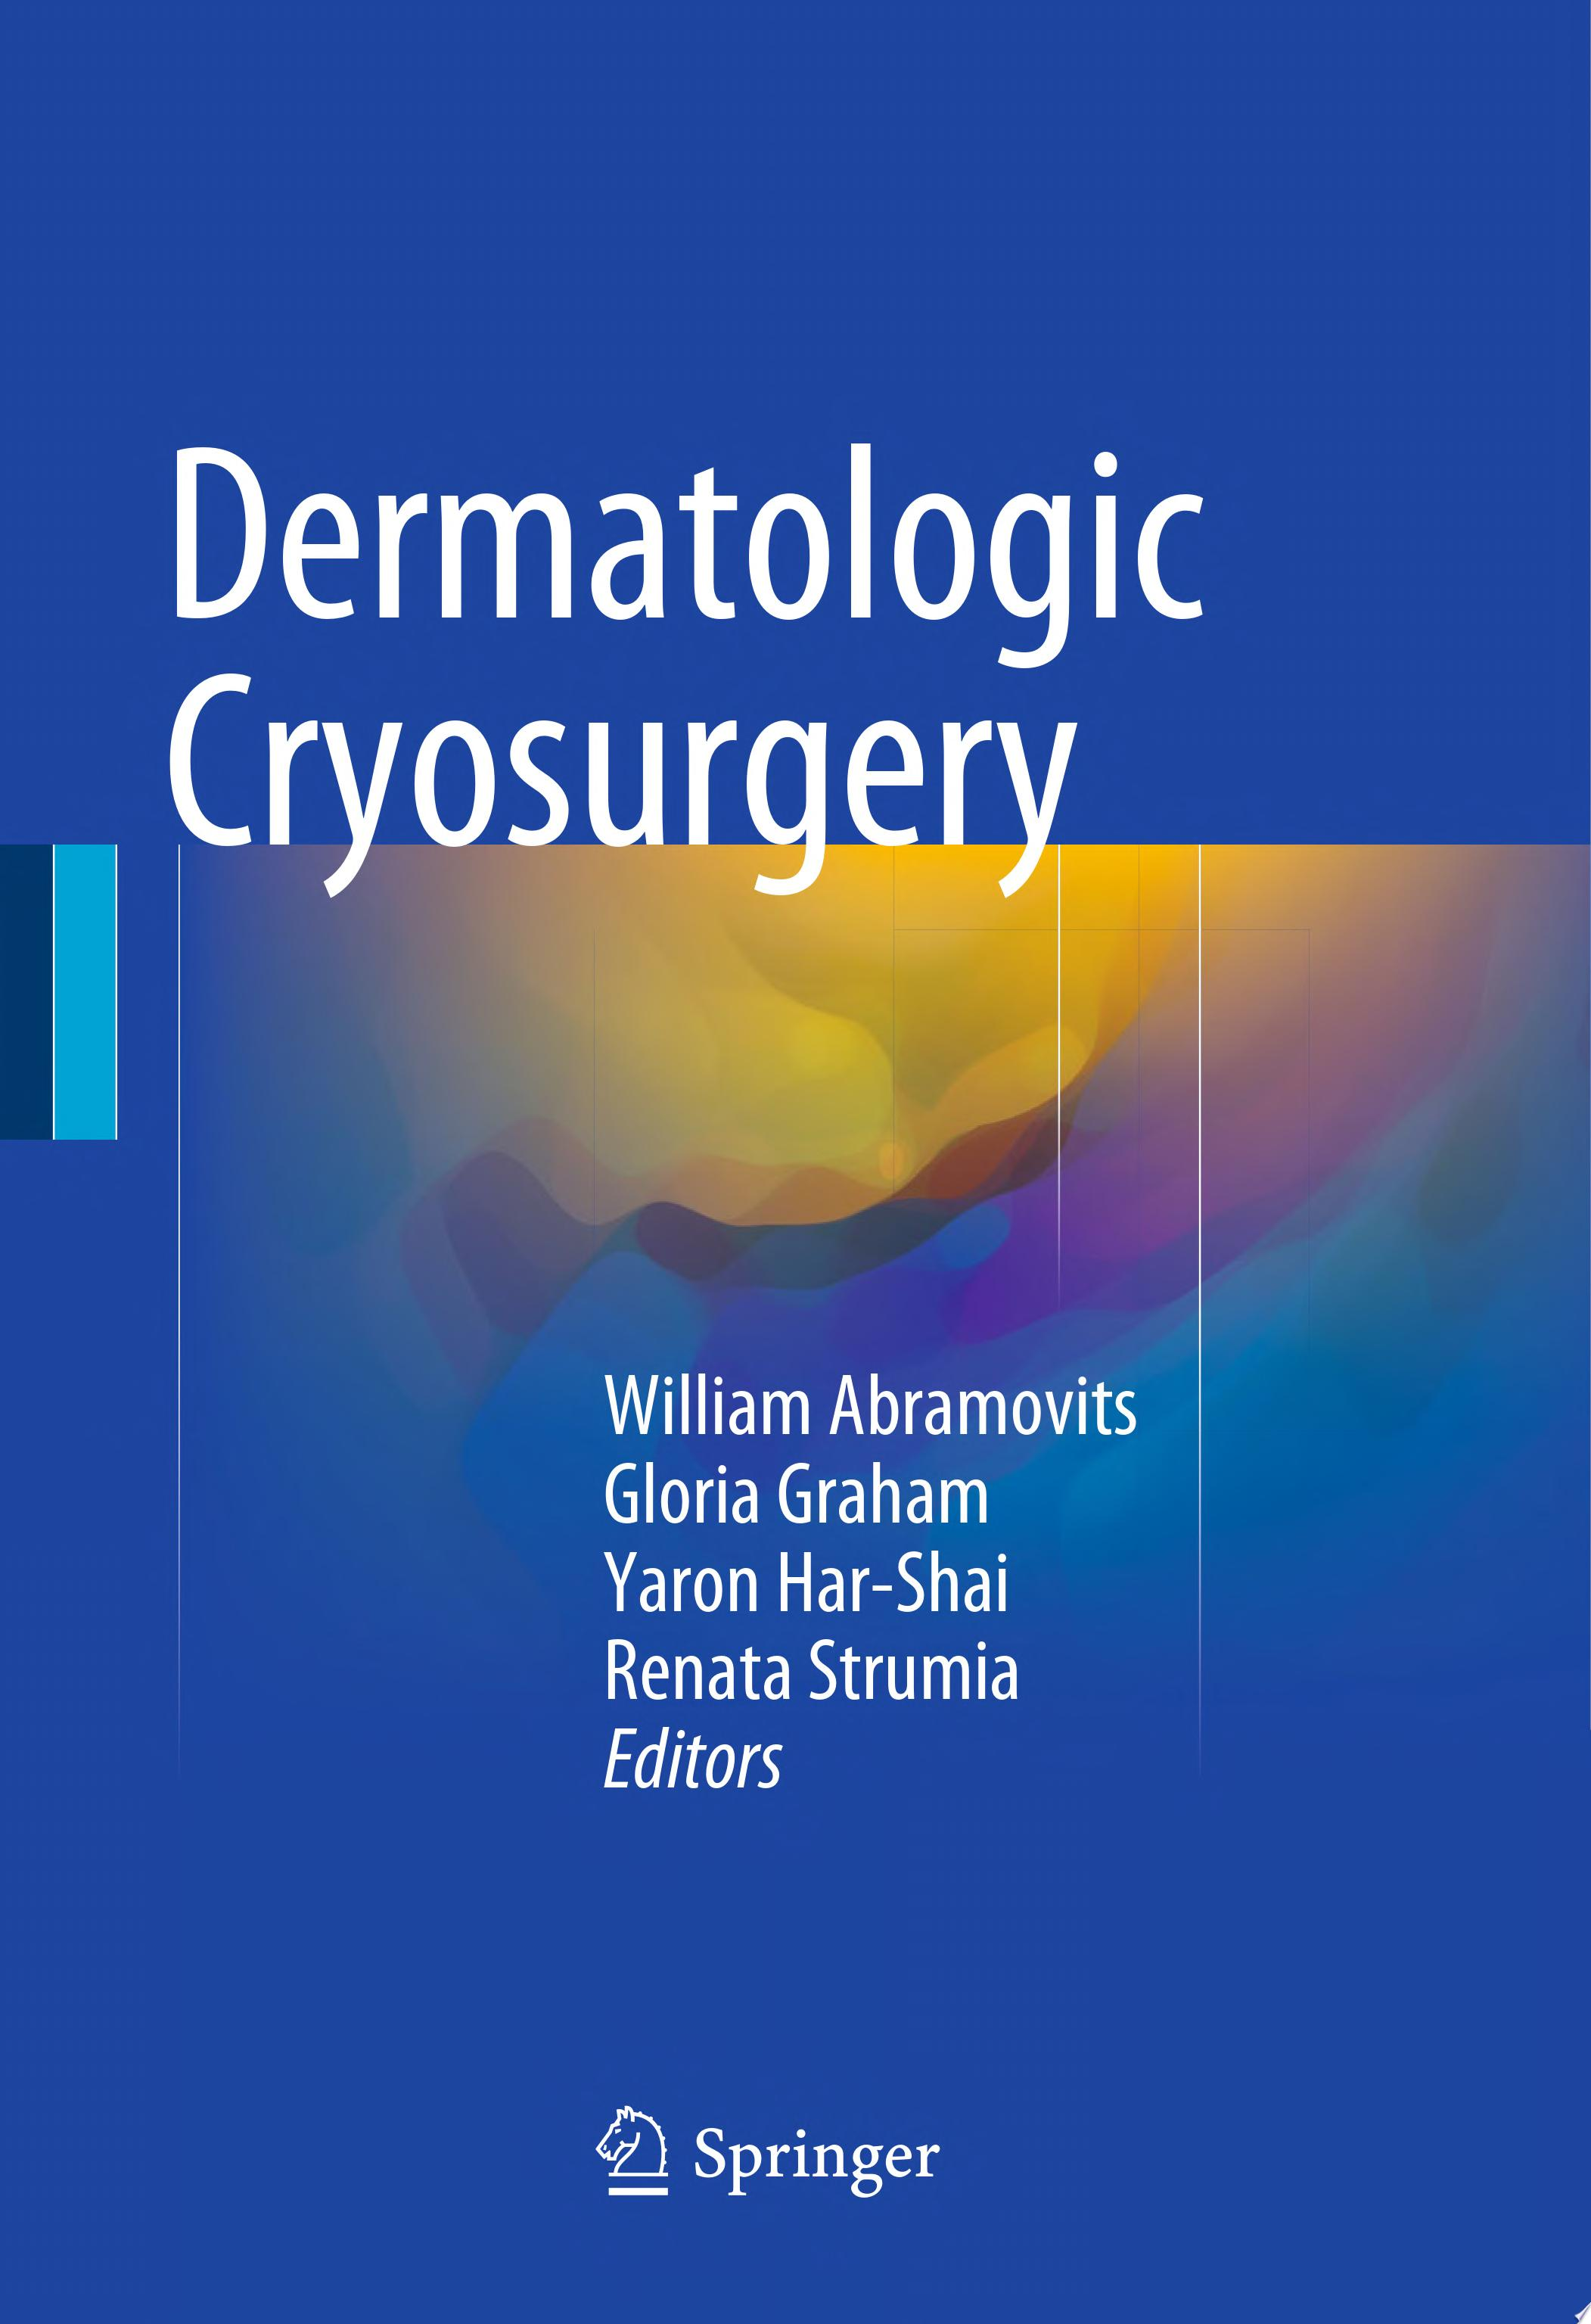 Dermatological Cryosurgery and Cryotherapy